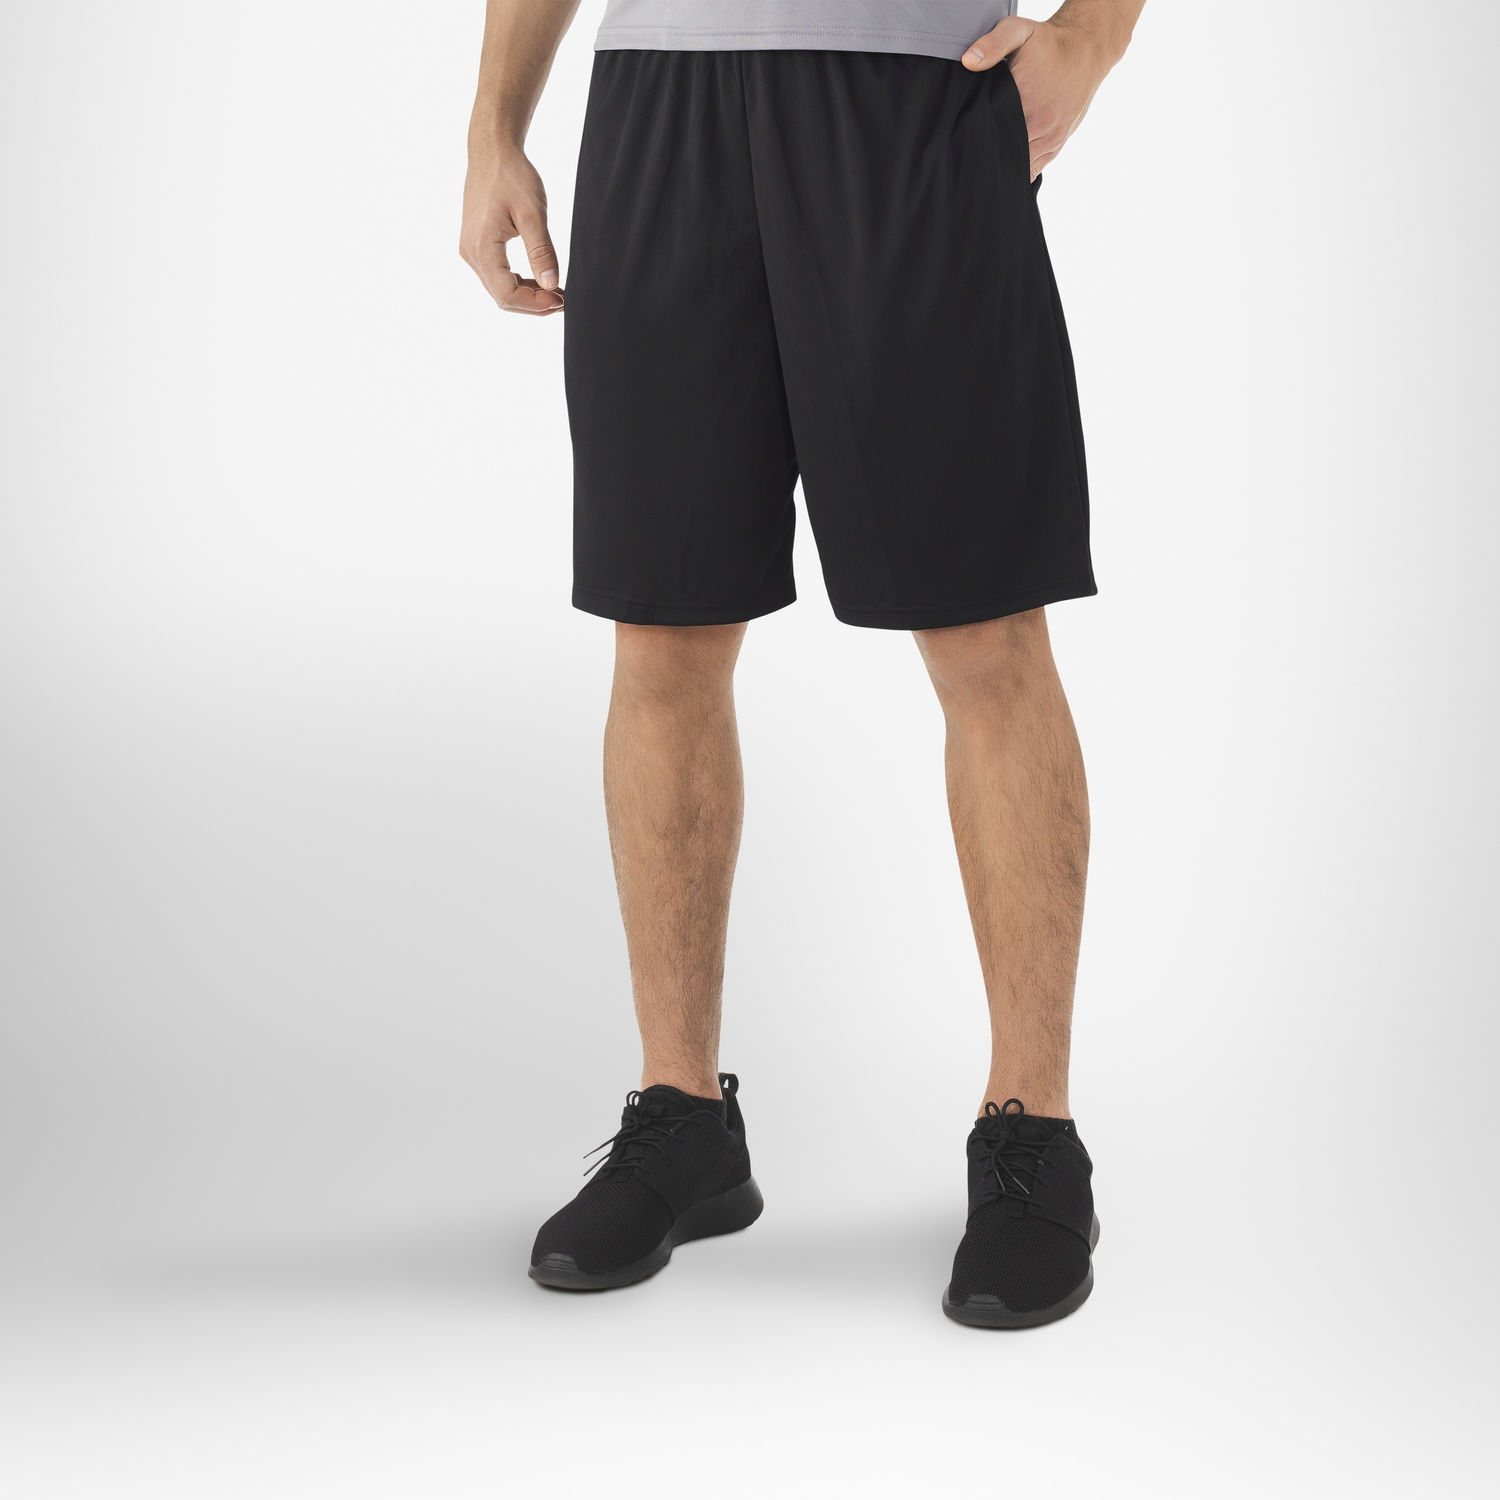 'Russell Athletic TS7X2M 10 Essential with Pockets Shorts '